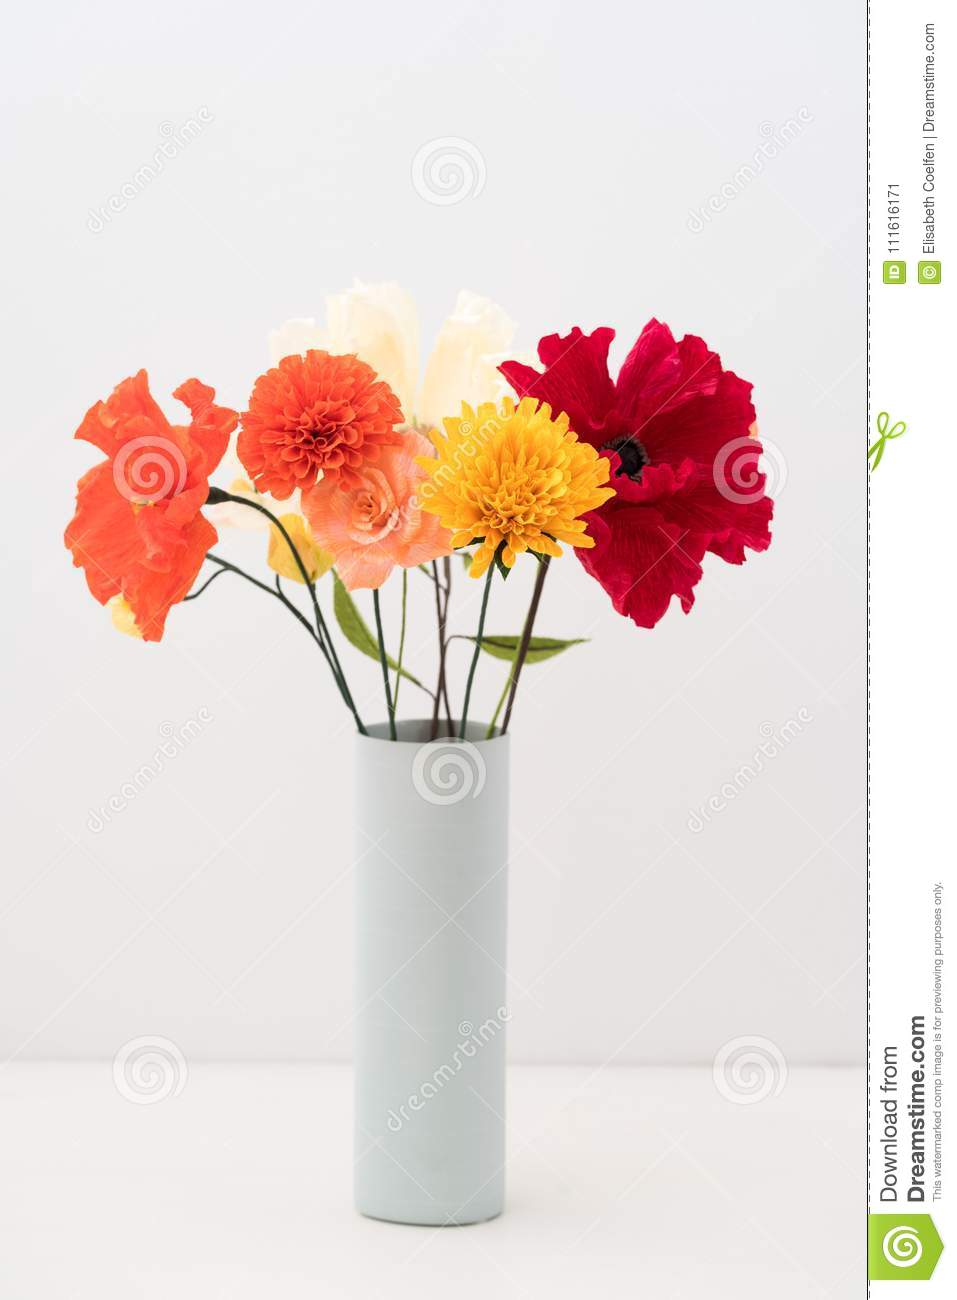 Crepe Paper Flower Bouquet Stock Image Image Of Leaves 111616171